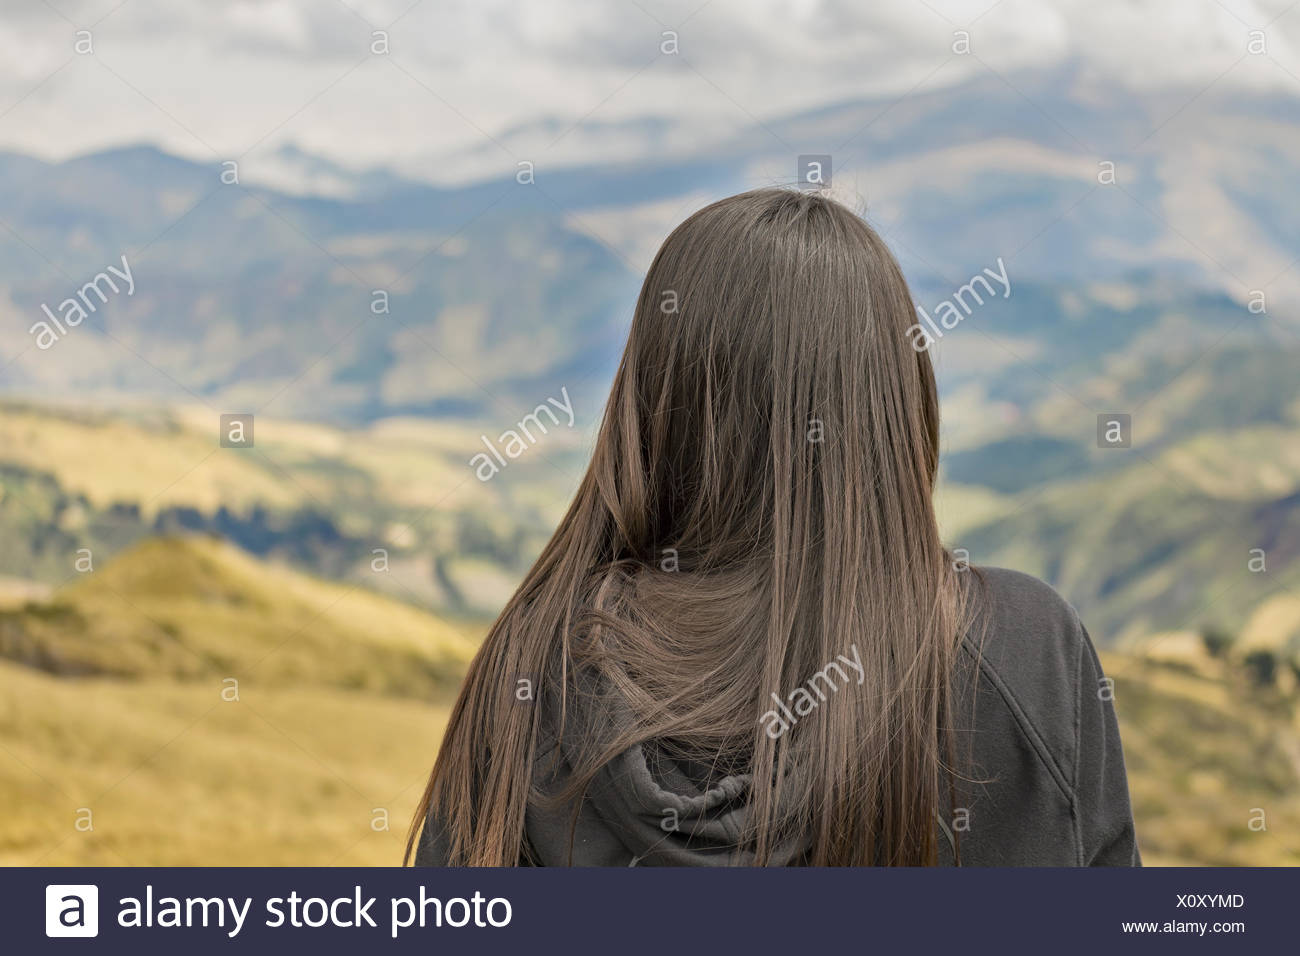 Back View Woman Contemplating the Landscape - Stock Image